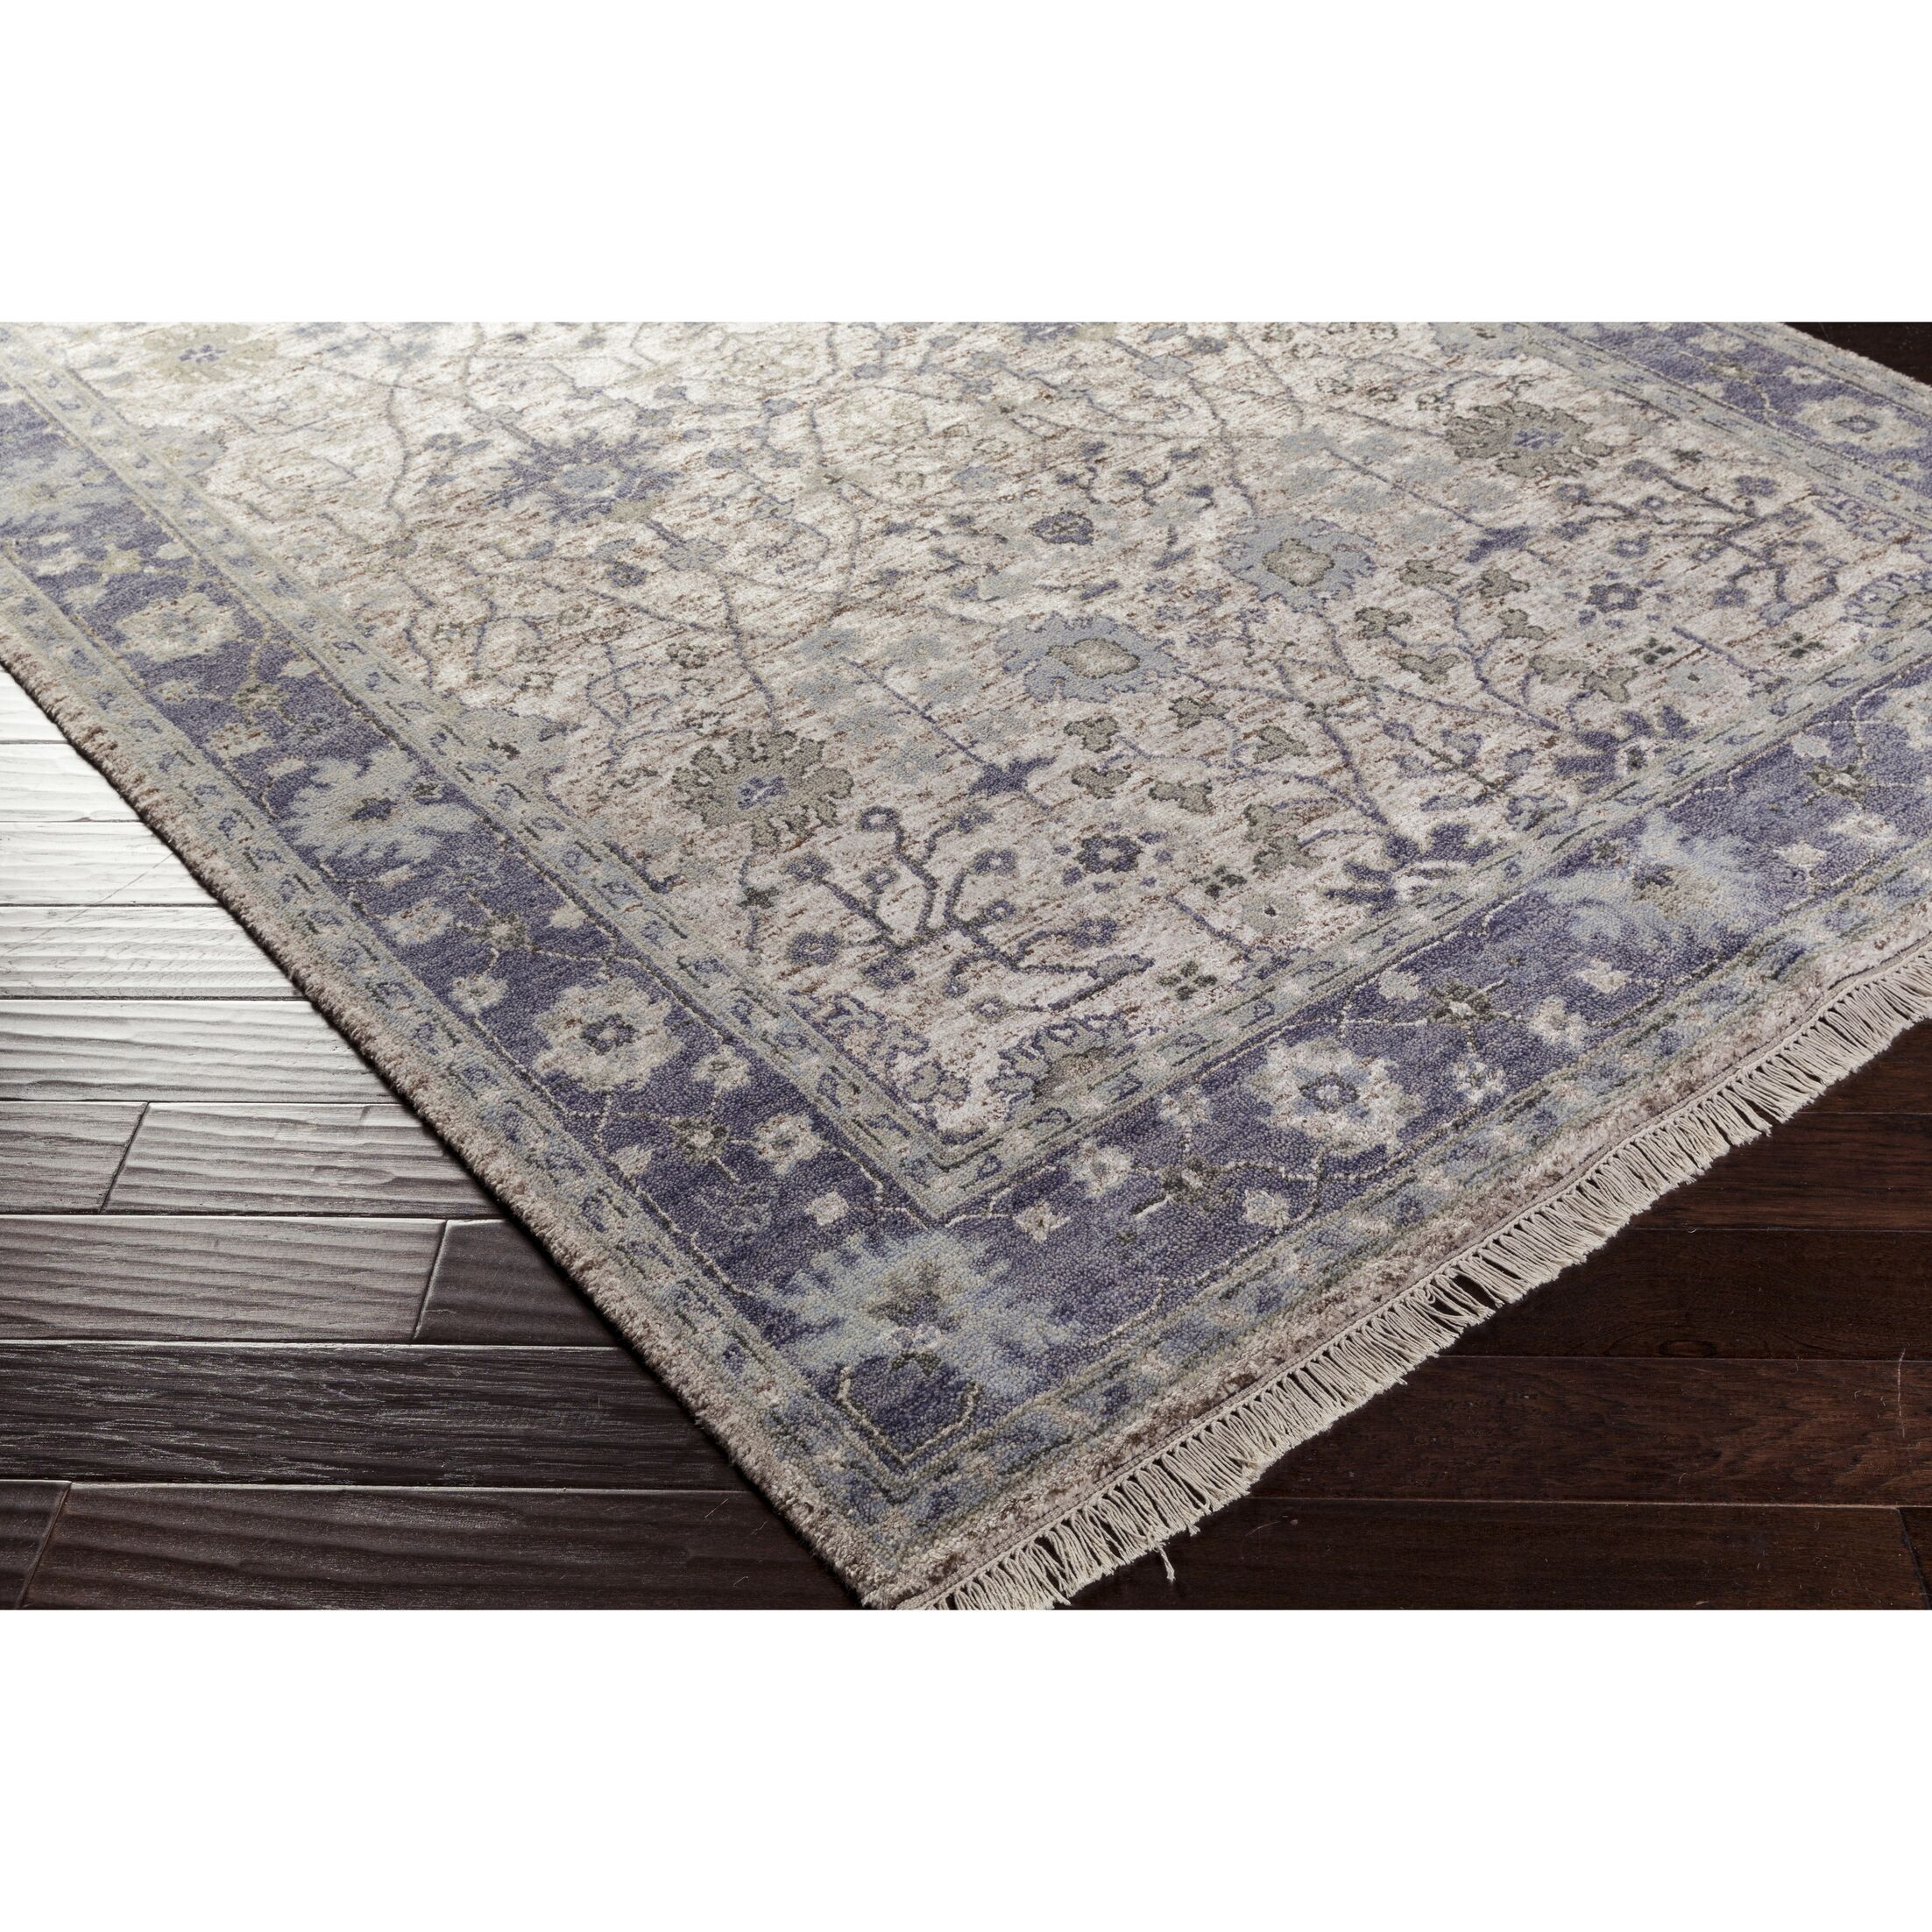 Skegness Hand-Knotted Blue/Green Area Rug Rug Size: Rectangle 9' x 13'